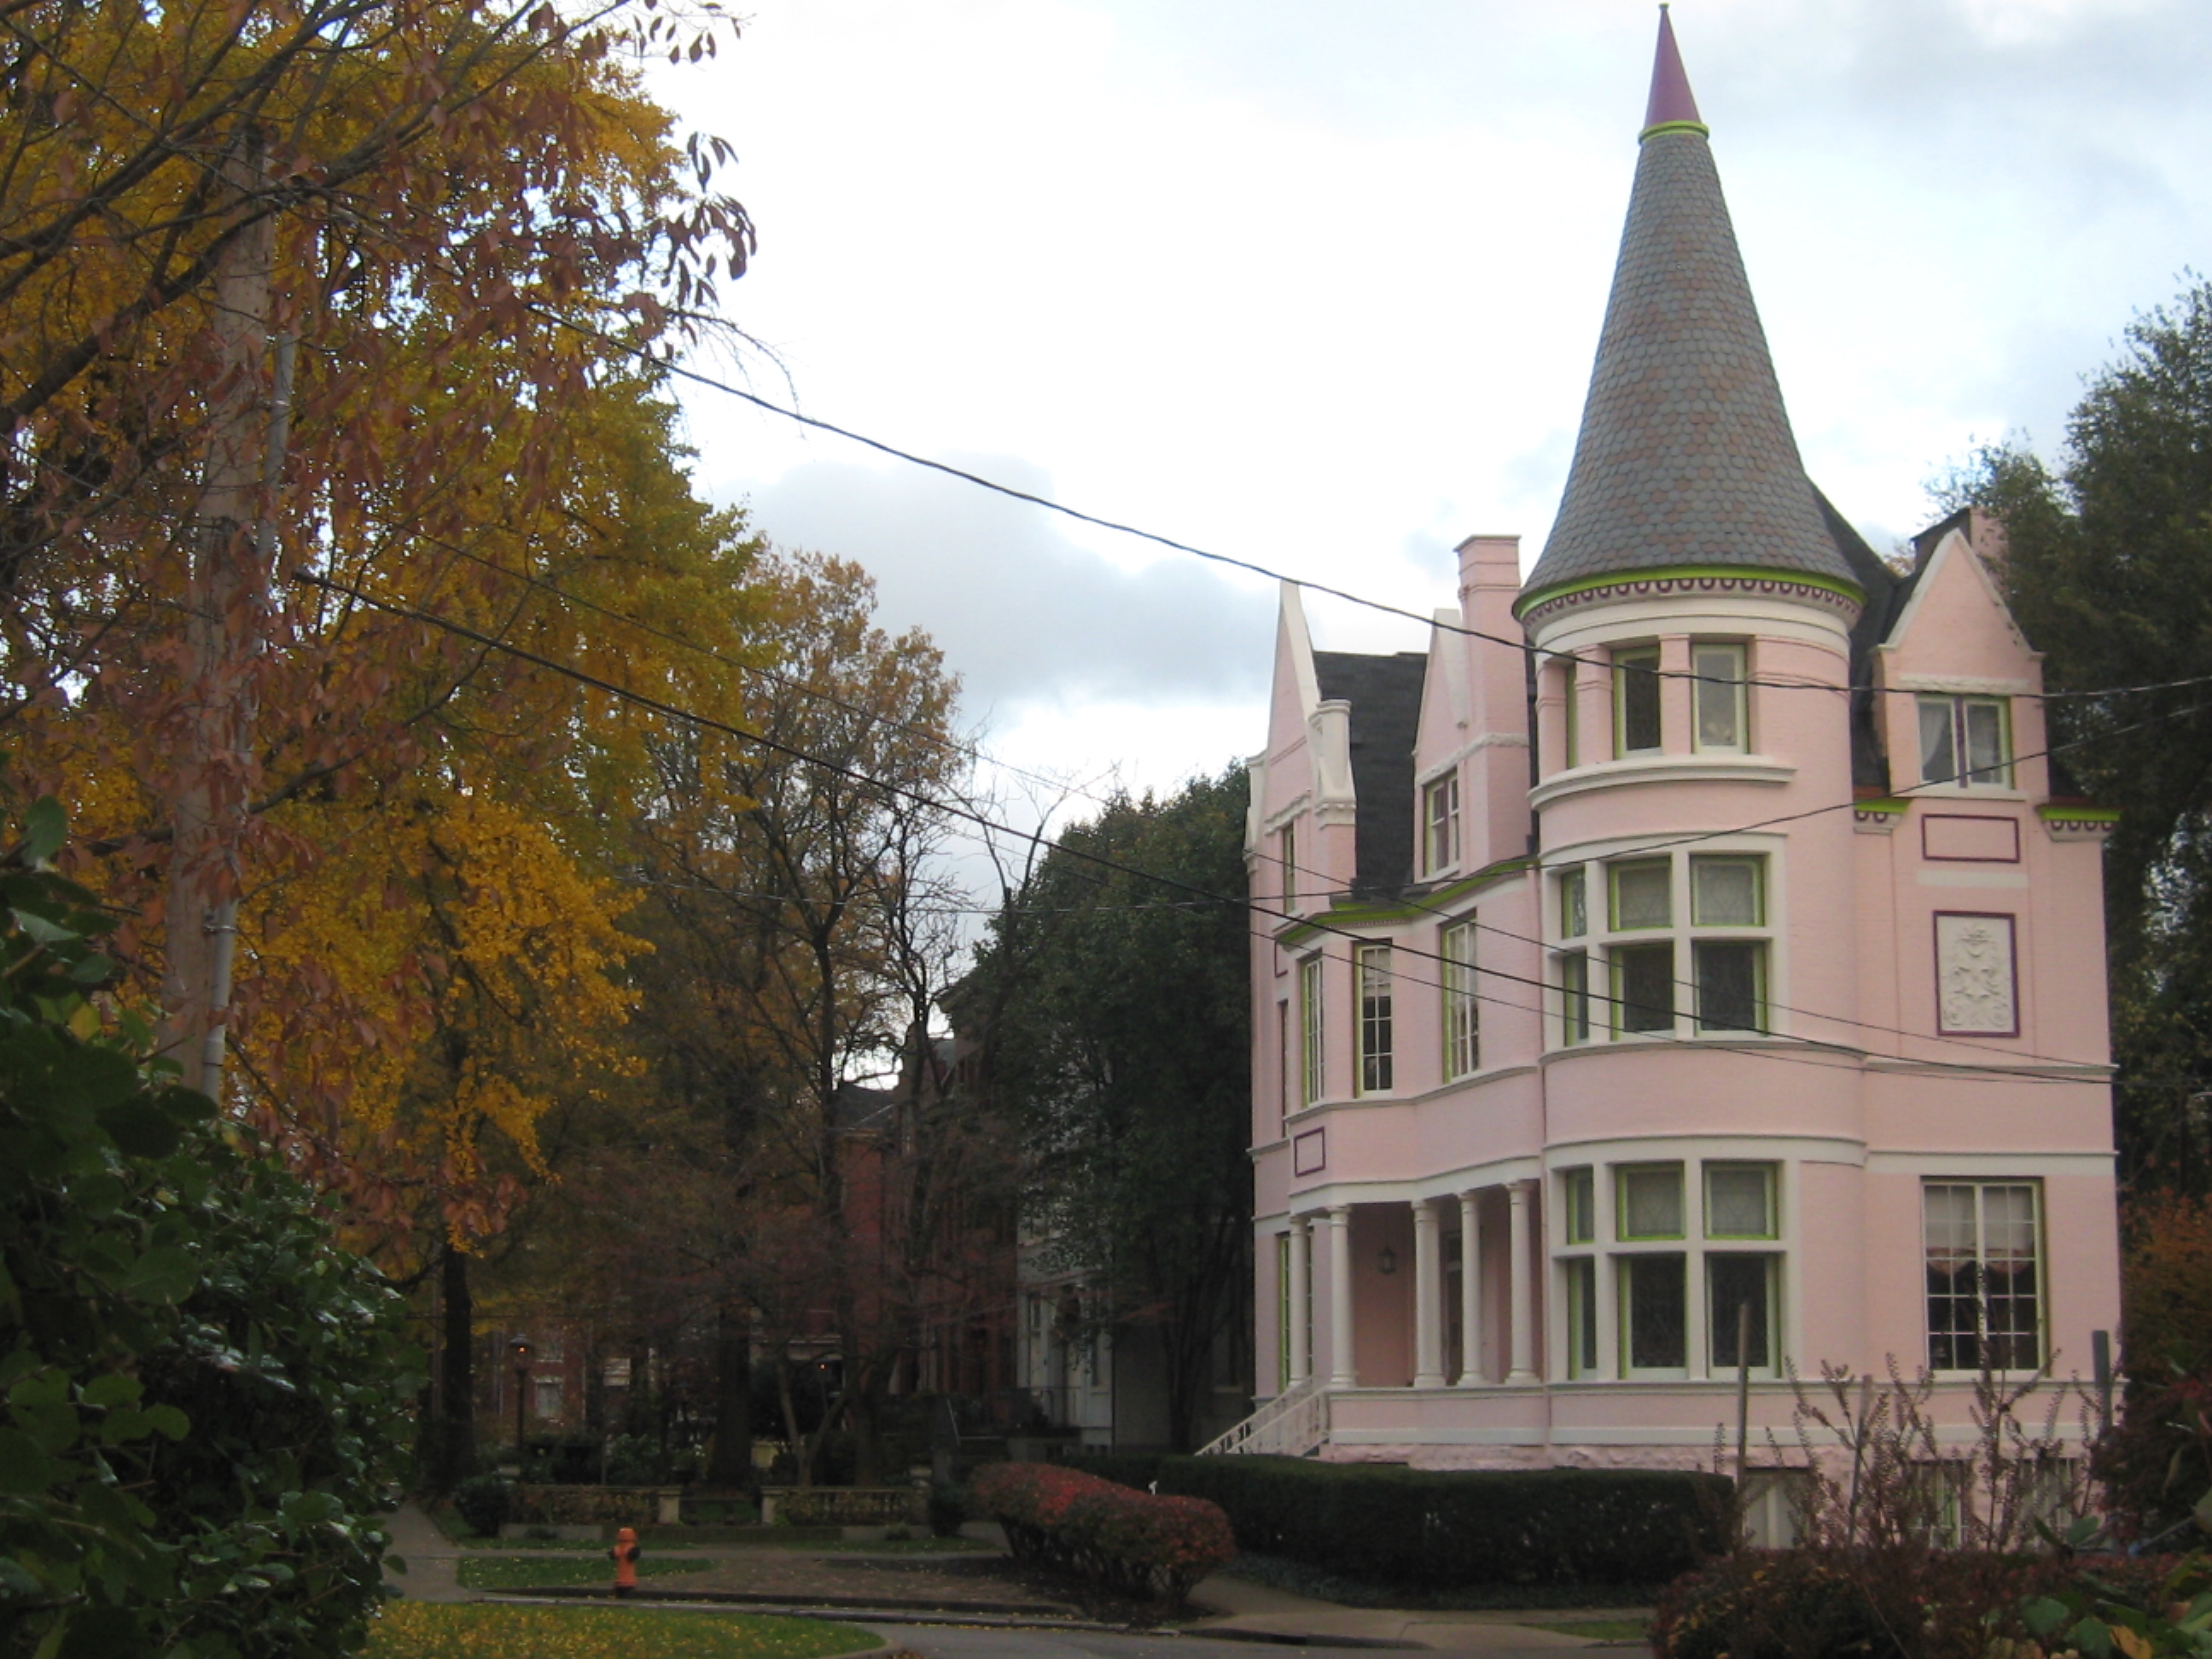 The Most Haunted Victorian Neighborhood In America